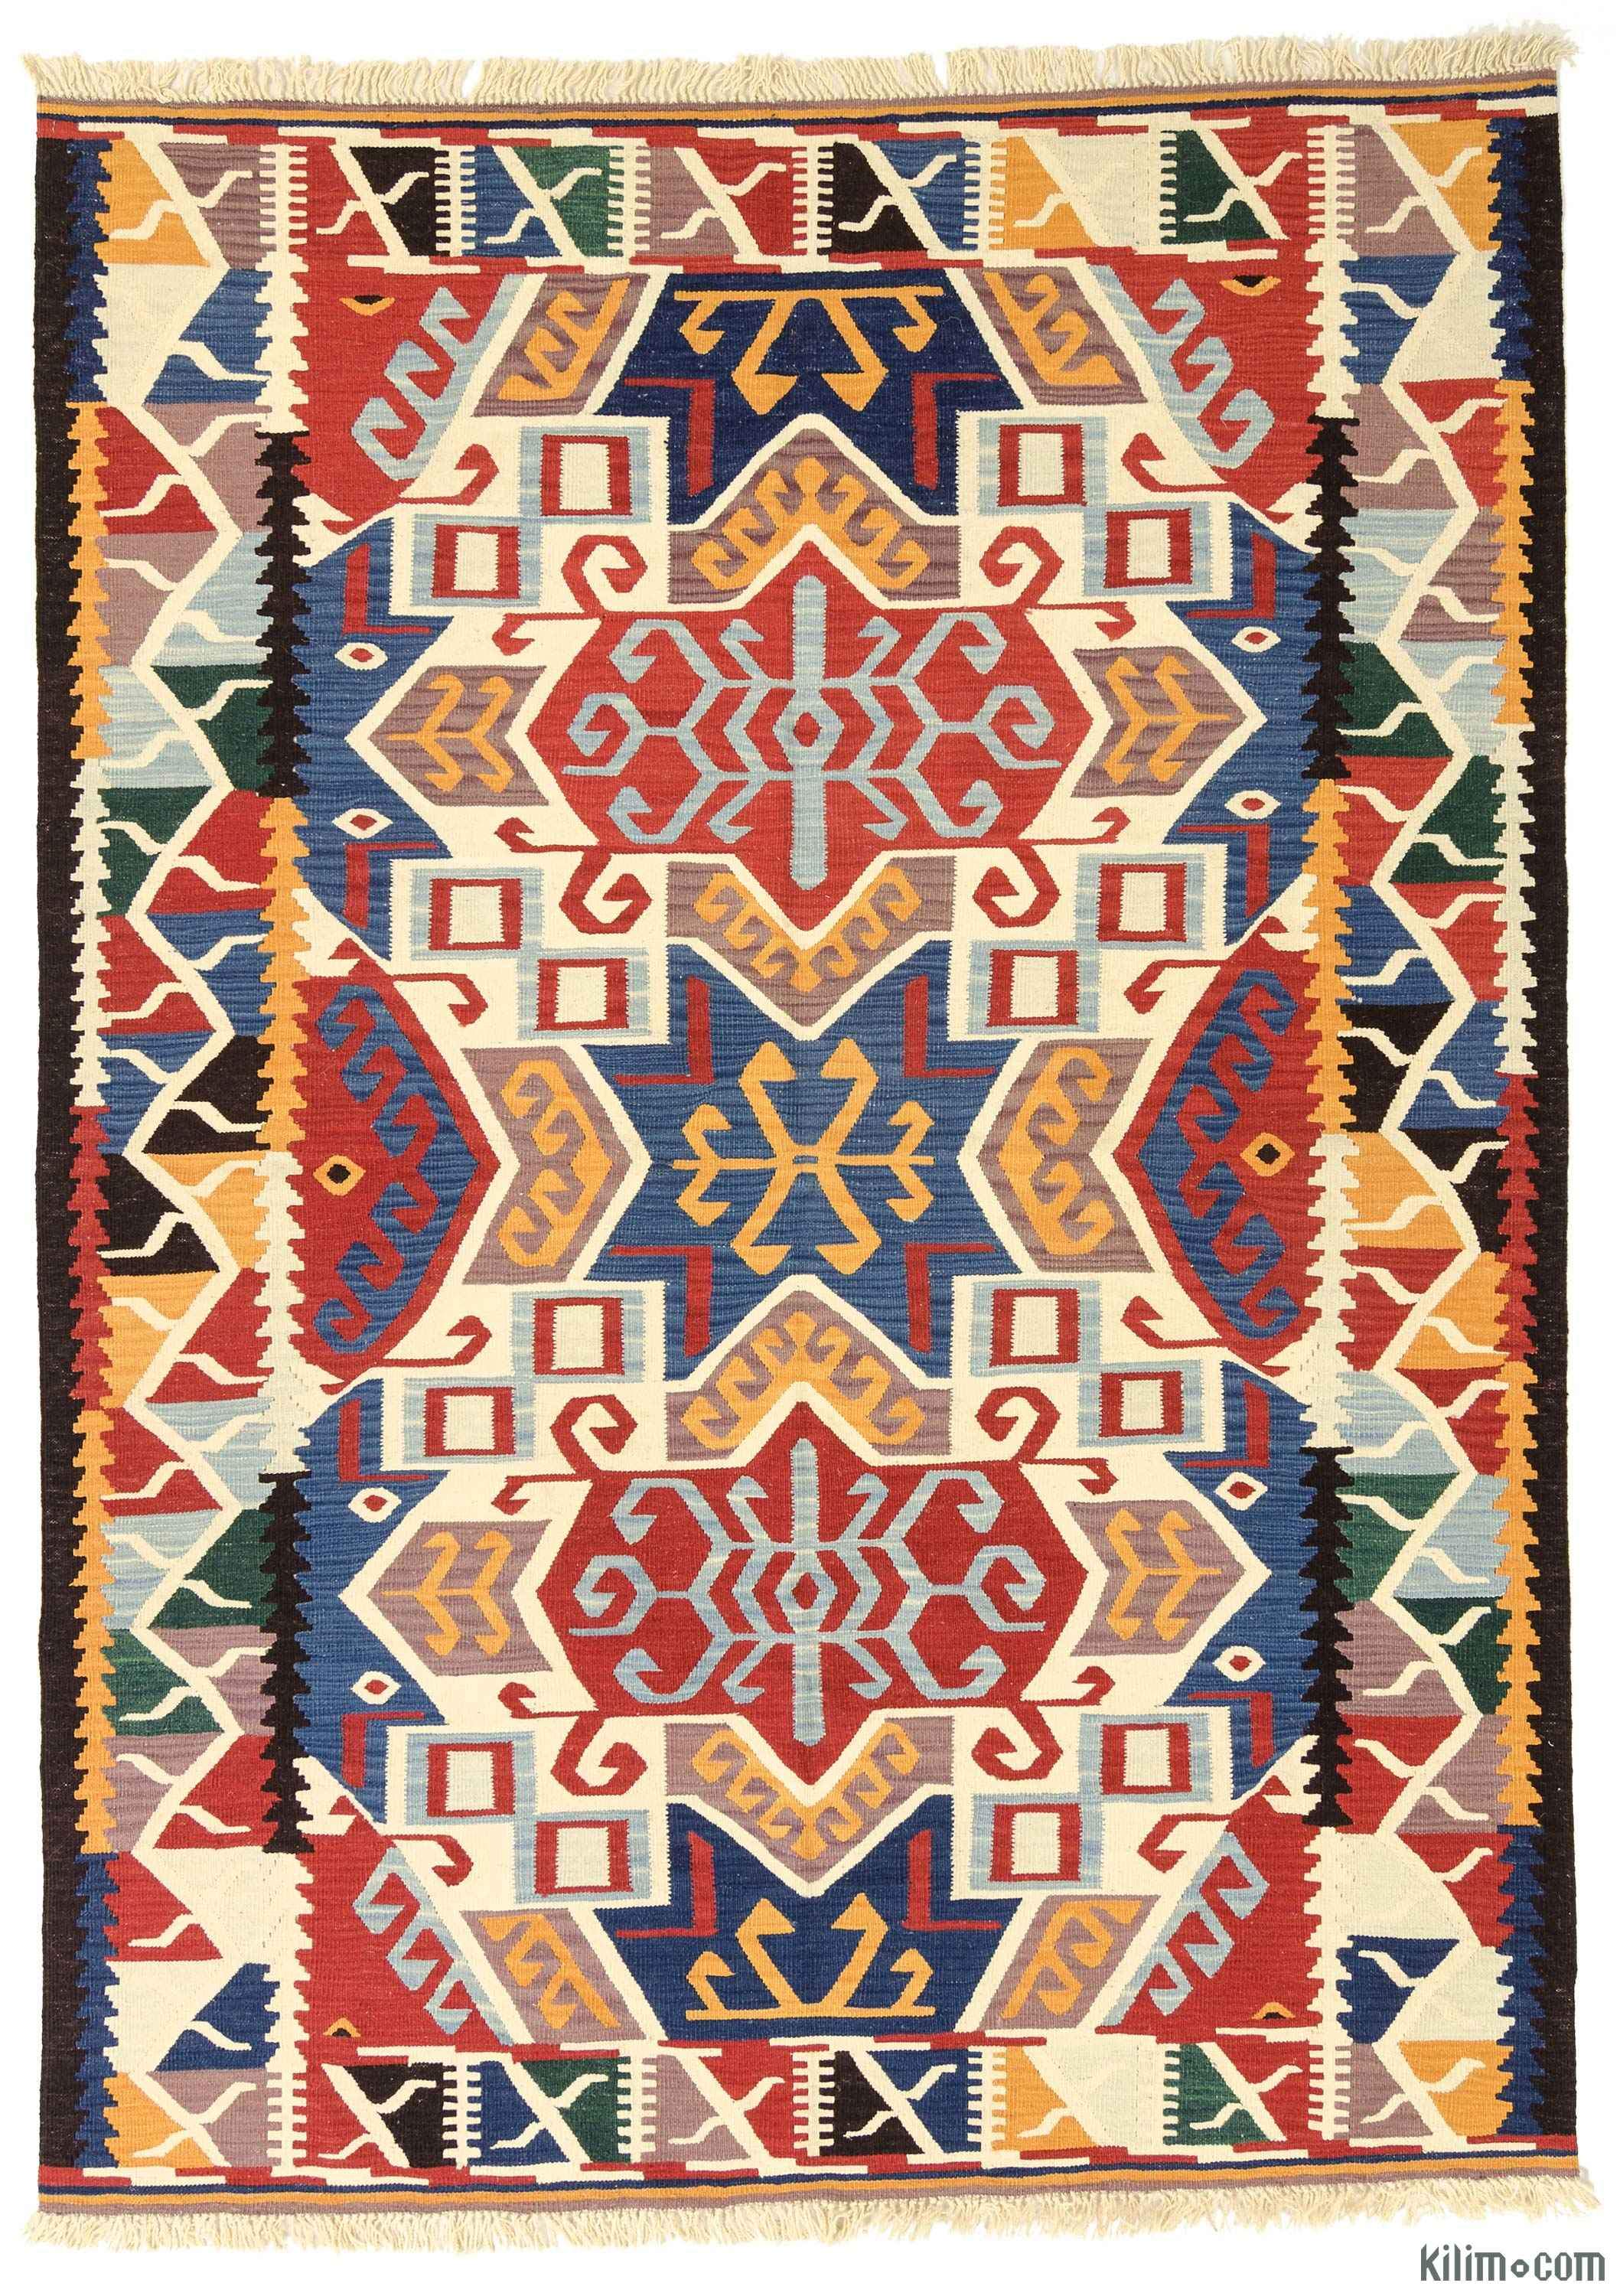 Rugs And Kilims Are The Master Elements Of Bohemian Style: K0012303 New Turkish Kilim Rug